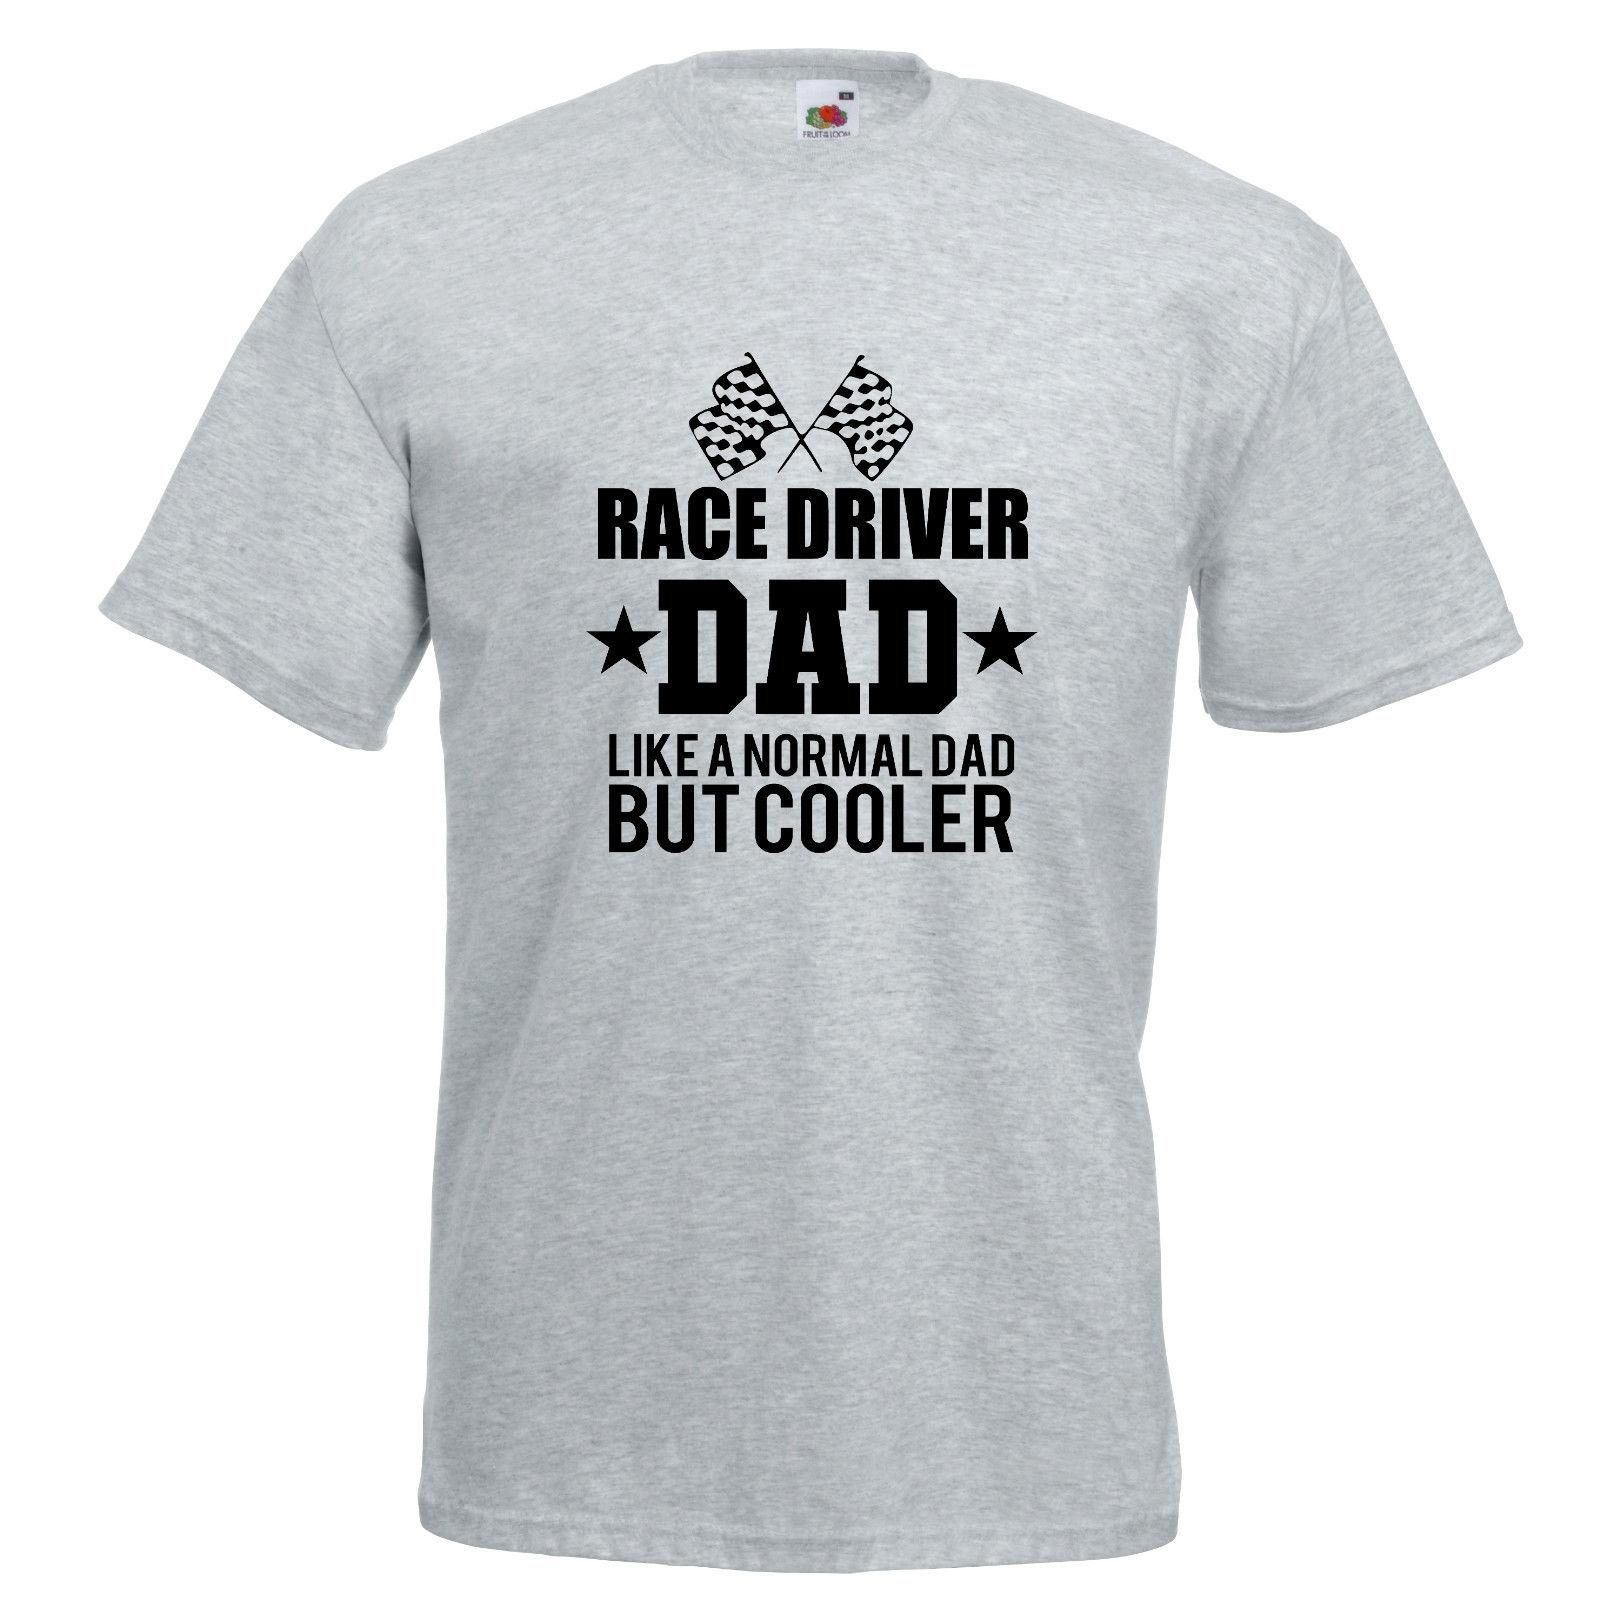 f9e0cffb Funny T Shirt Race Driver Racing Car Gift Dad Humor Banger Racer Motorsport  New Funny Unisex Casual It T Shirts Humor T Shirts From Fantees, $12.96|  DHgate.